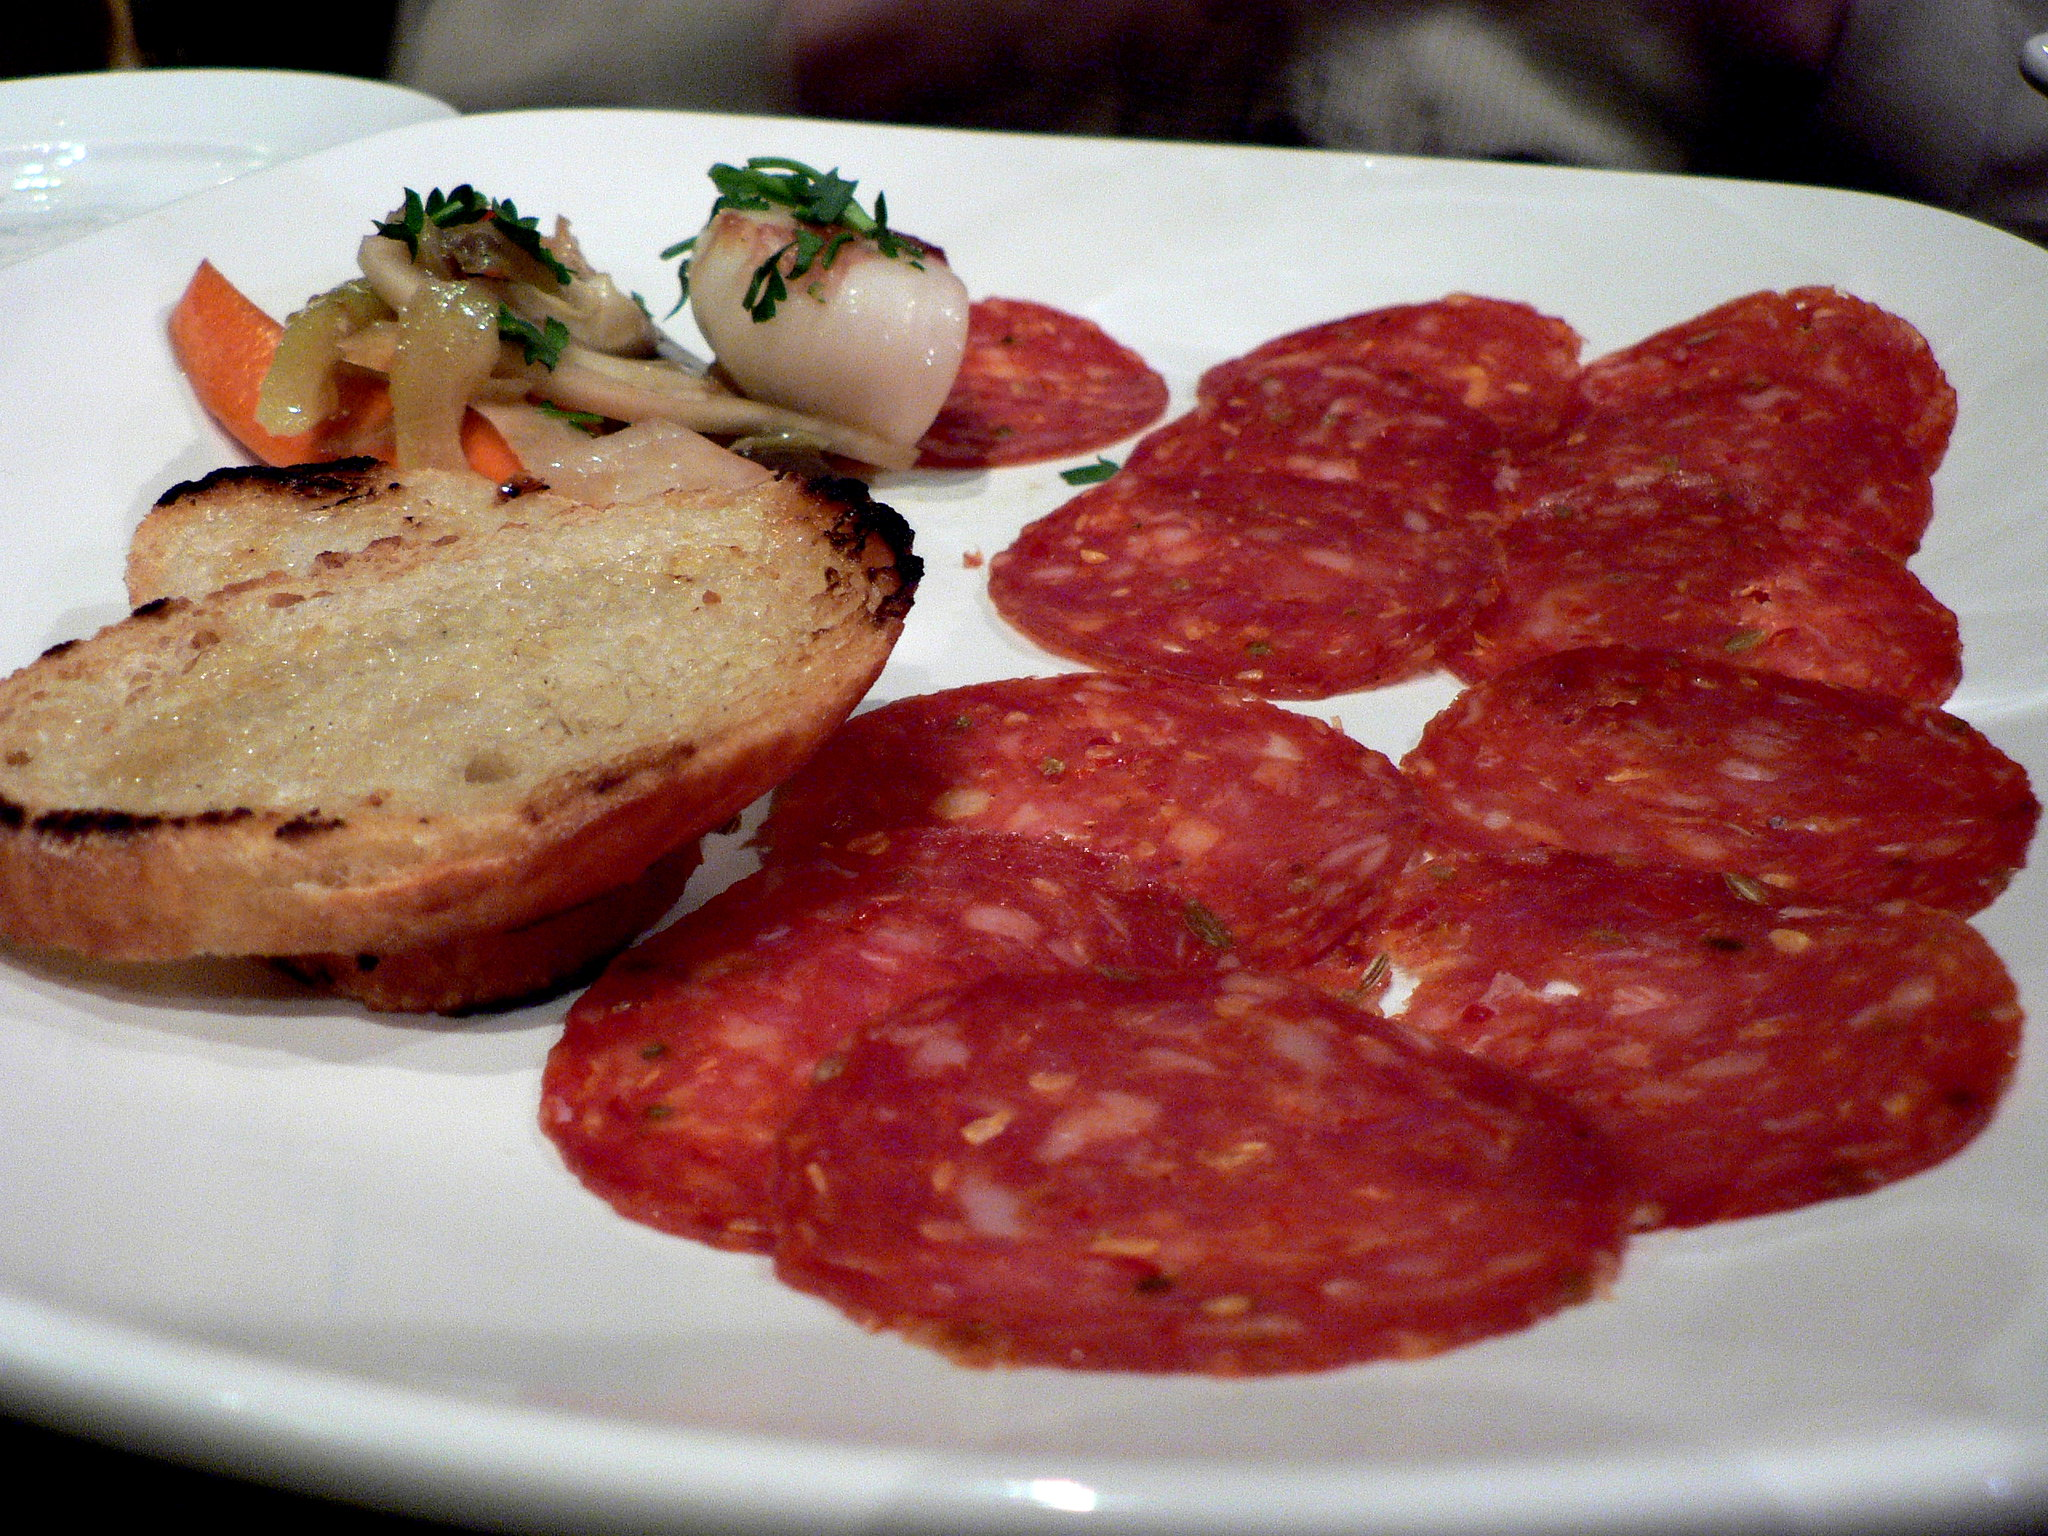 Salame Genovese - photo by stu_spivack under CC BY-SA 2.0